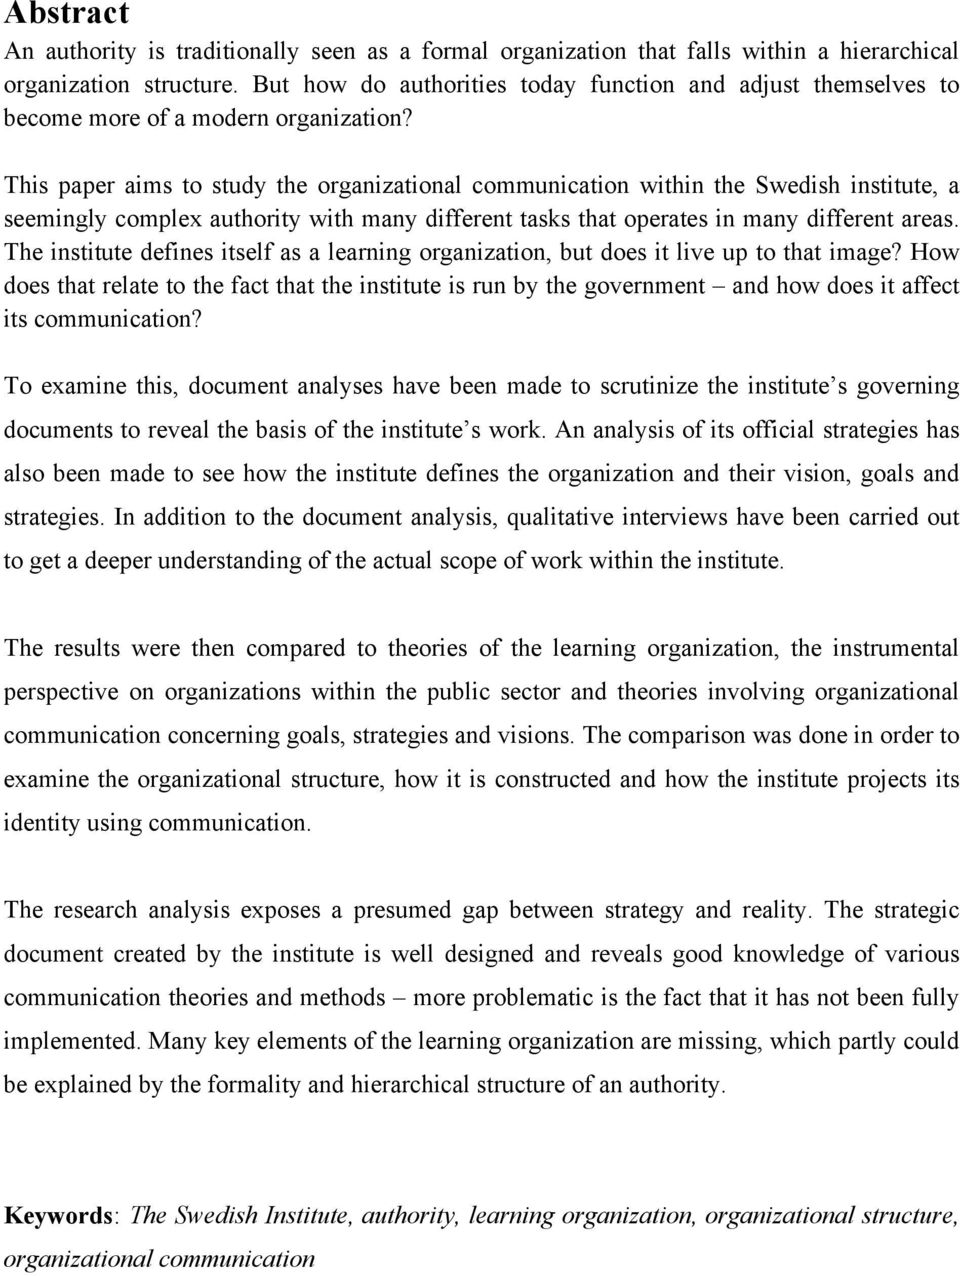 This paper aims to study the organizational communication within the Swedish institute, a seemingly complex authority with many different tasks that operates in many different areas.